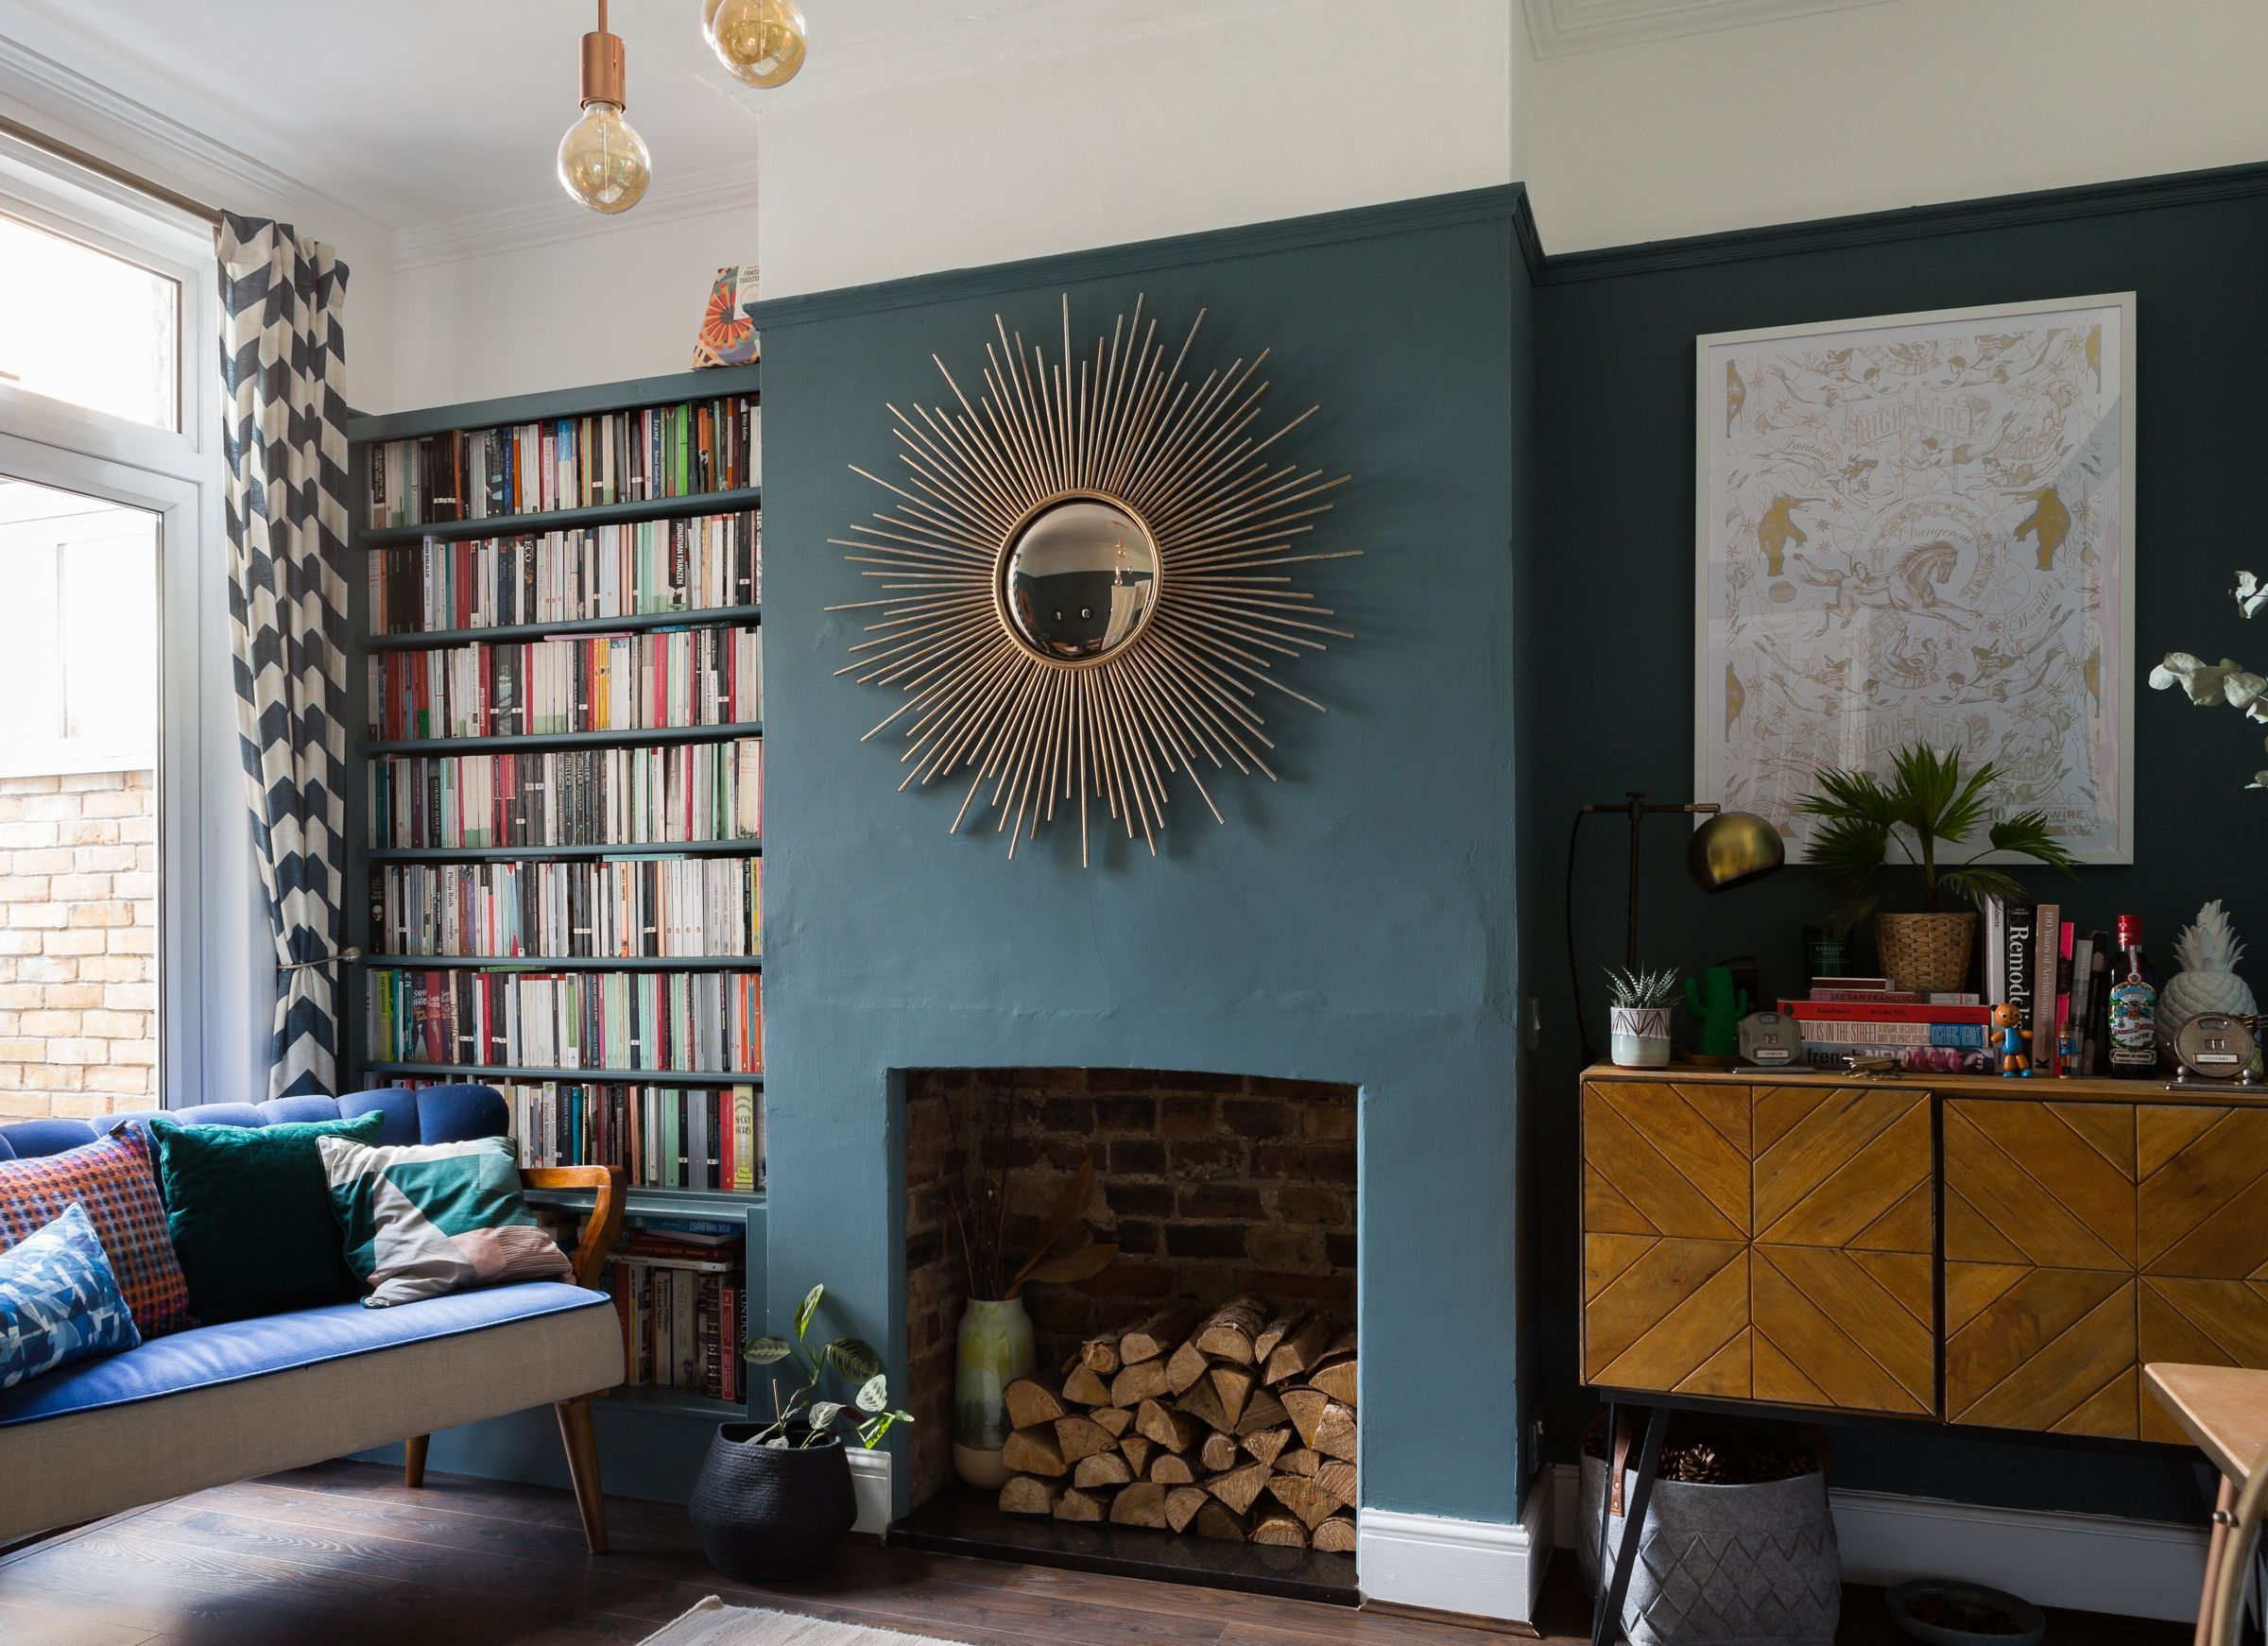 Design Soda Blogger And Interior Stylist Ruth Matthews Shares This